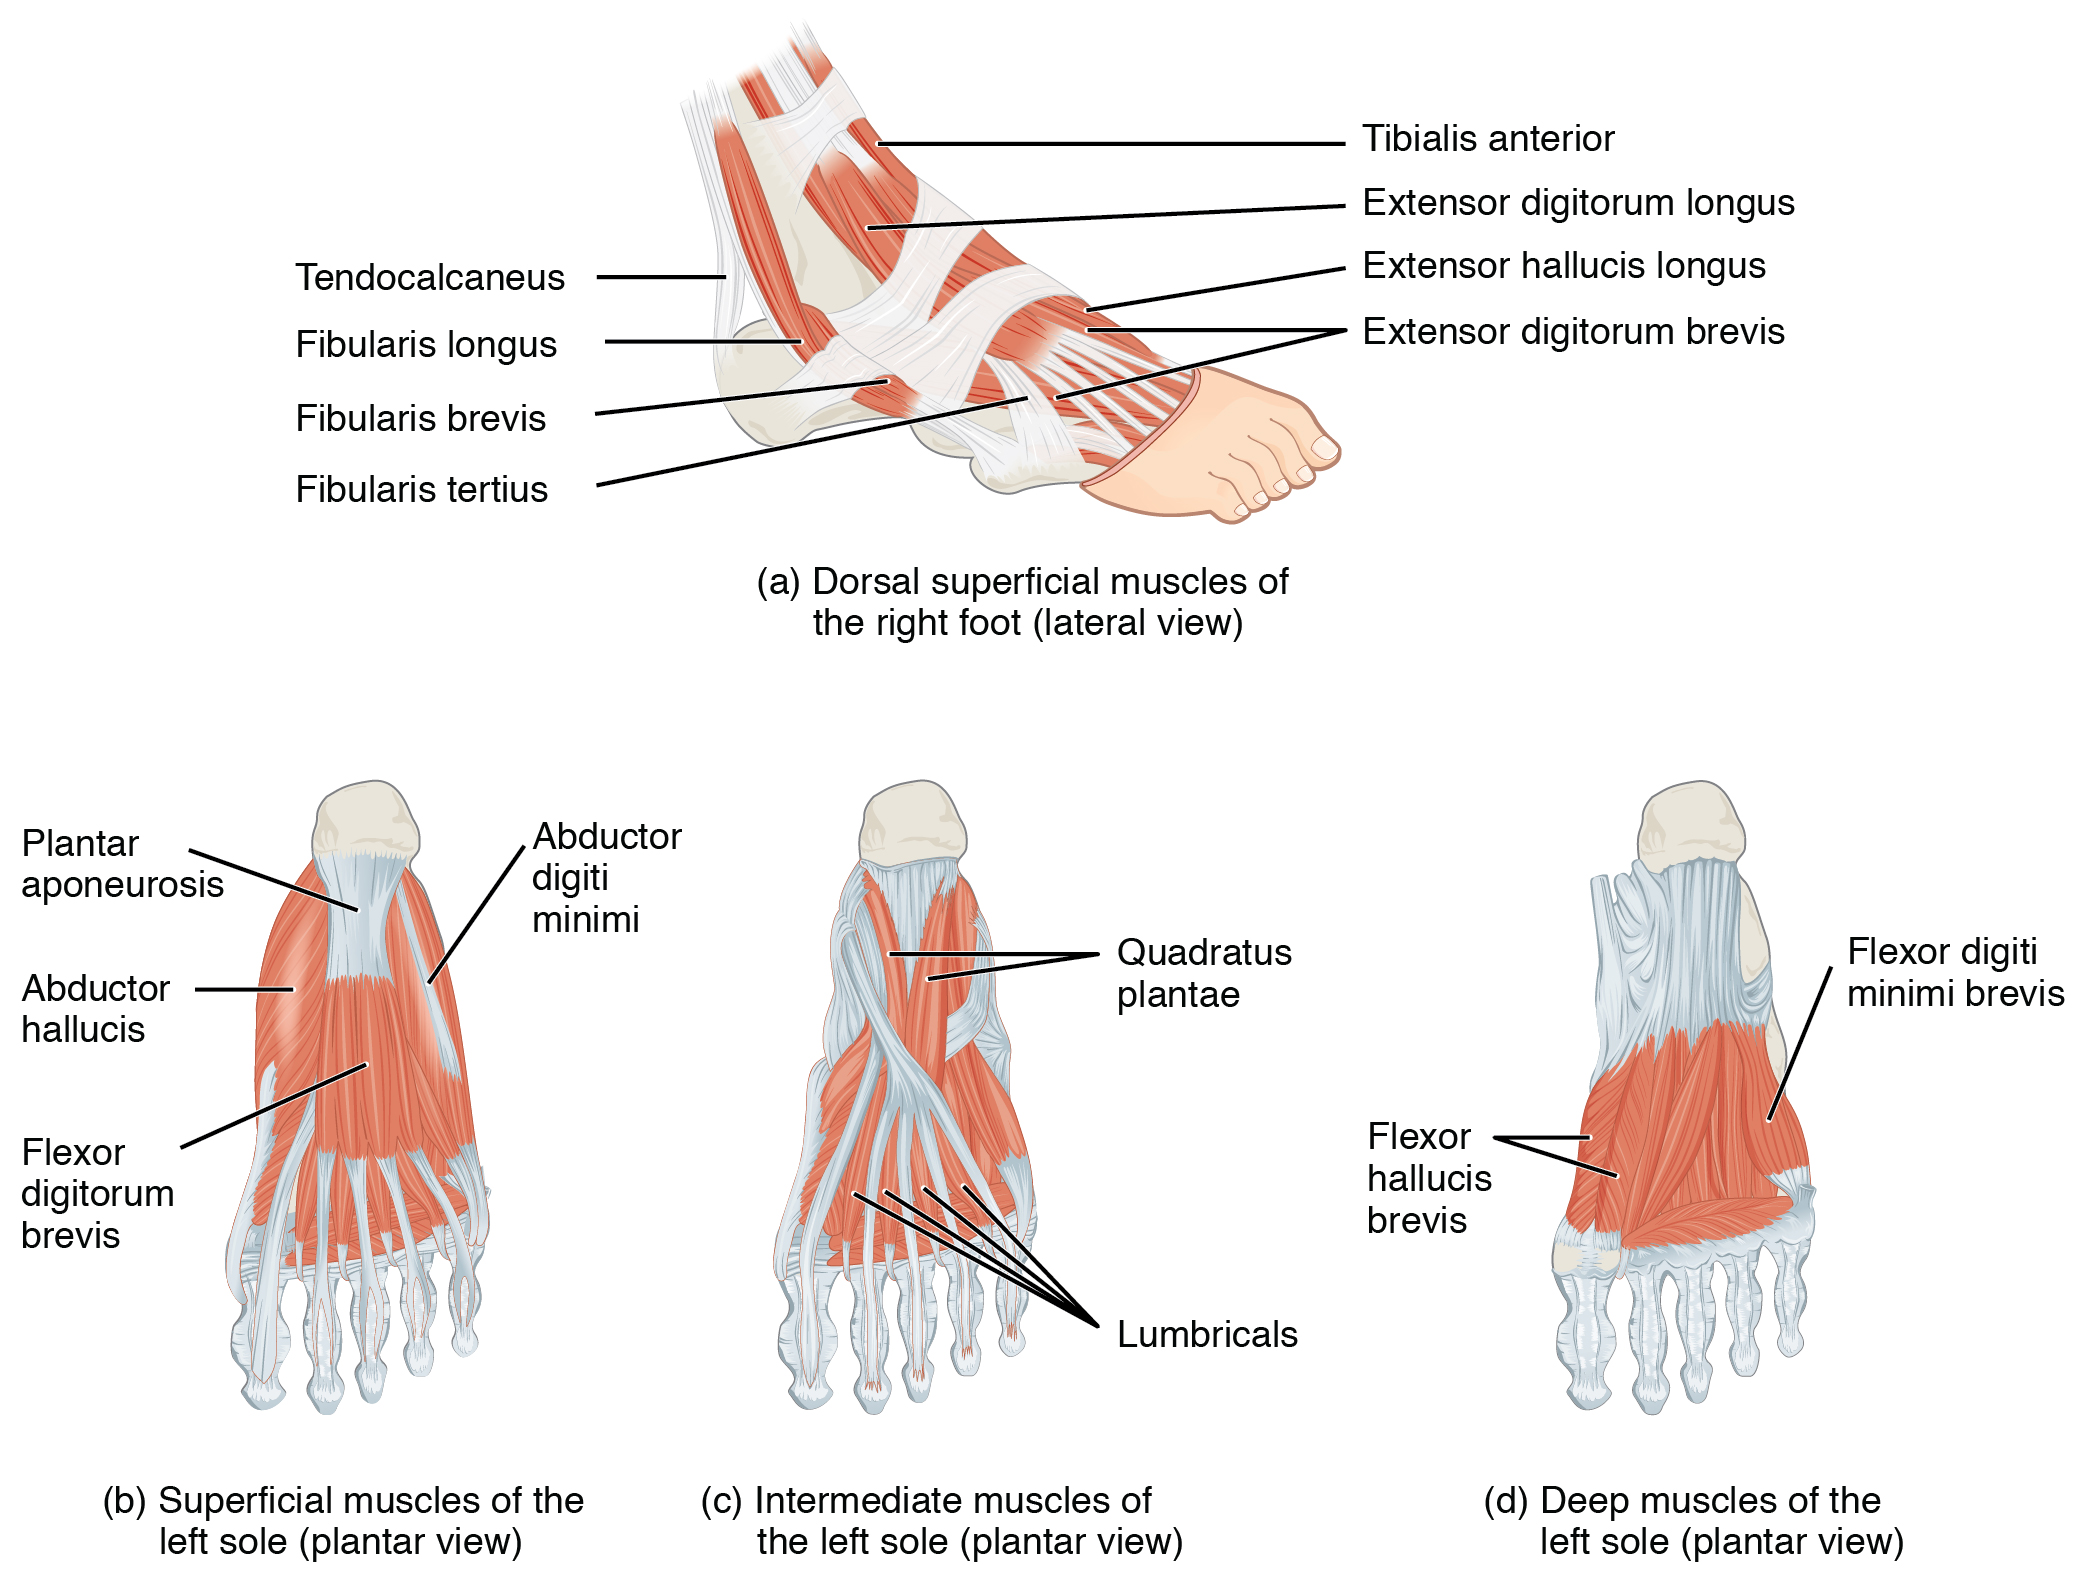 This figure shows the muscles of the foot. The top panel shows the lateral view of the dorsal muscles. The bottom left panel shows the superficial muscles of the left sole, the center panel shows the intermediate muscles of the left sole, and the right panel shows the deep muscles of the left sole.